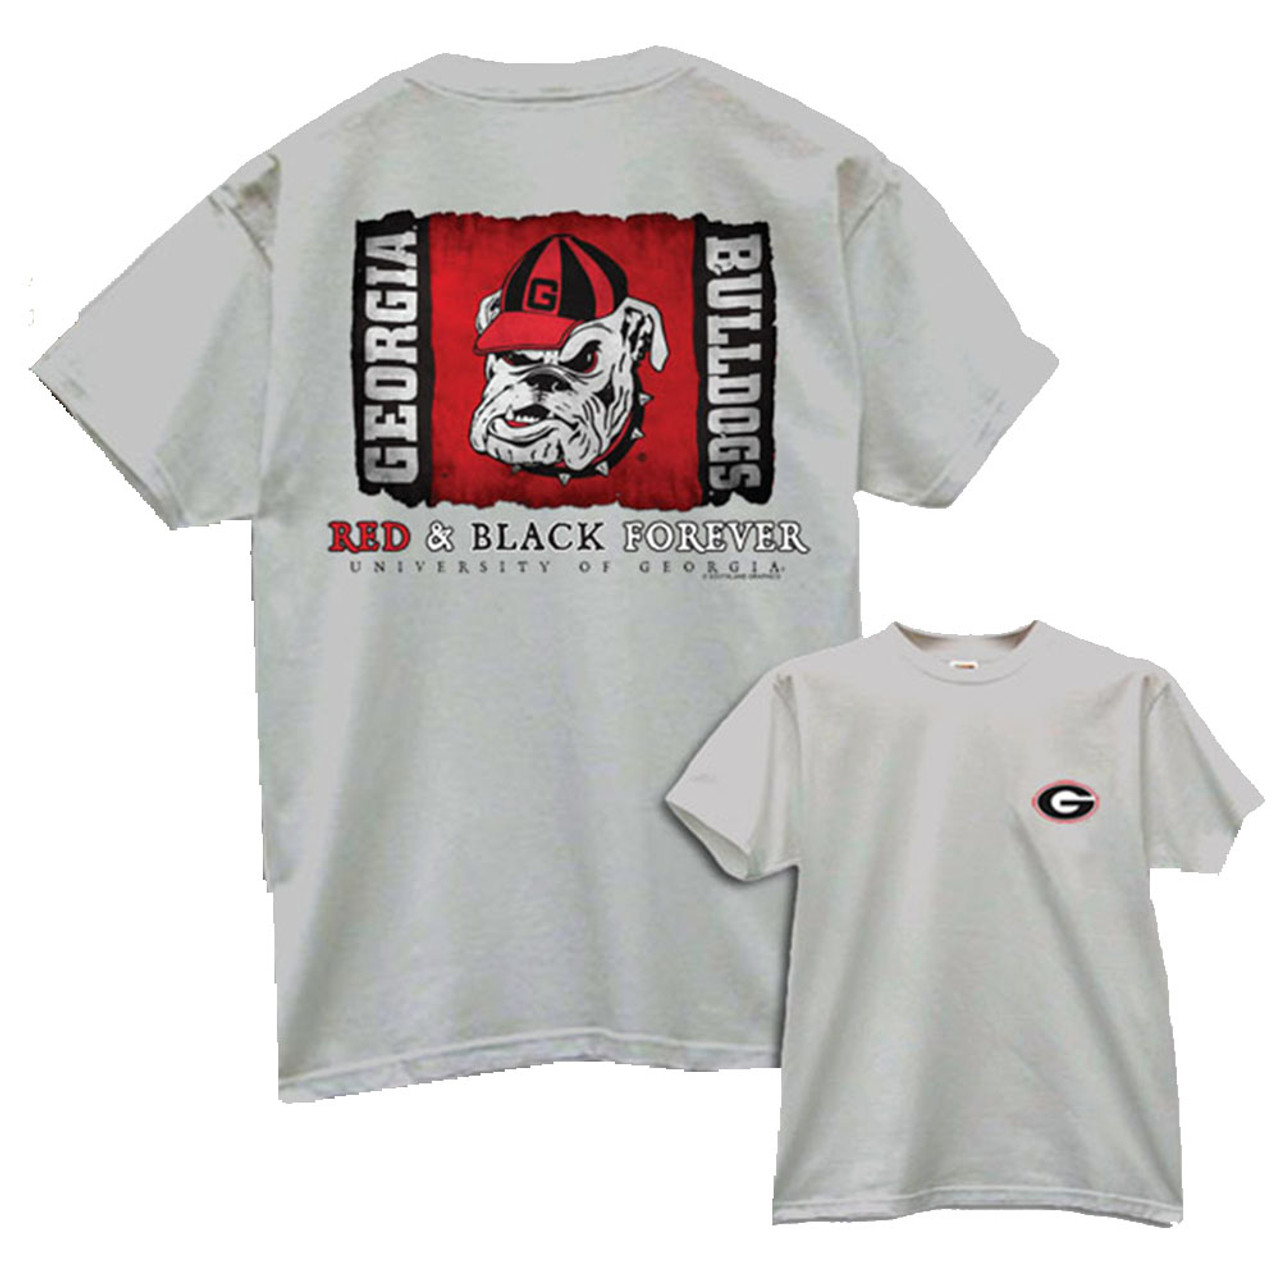 bfdf70be University Of Georgia Bulldogs Red & Black Forever T-shirt - Trenz Shirt  Company